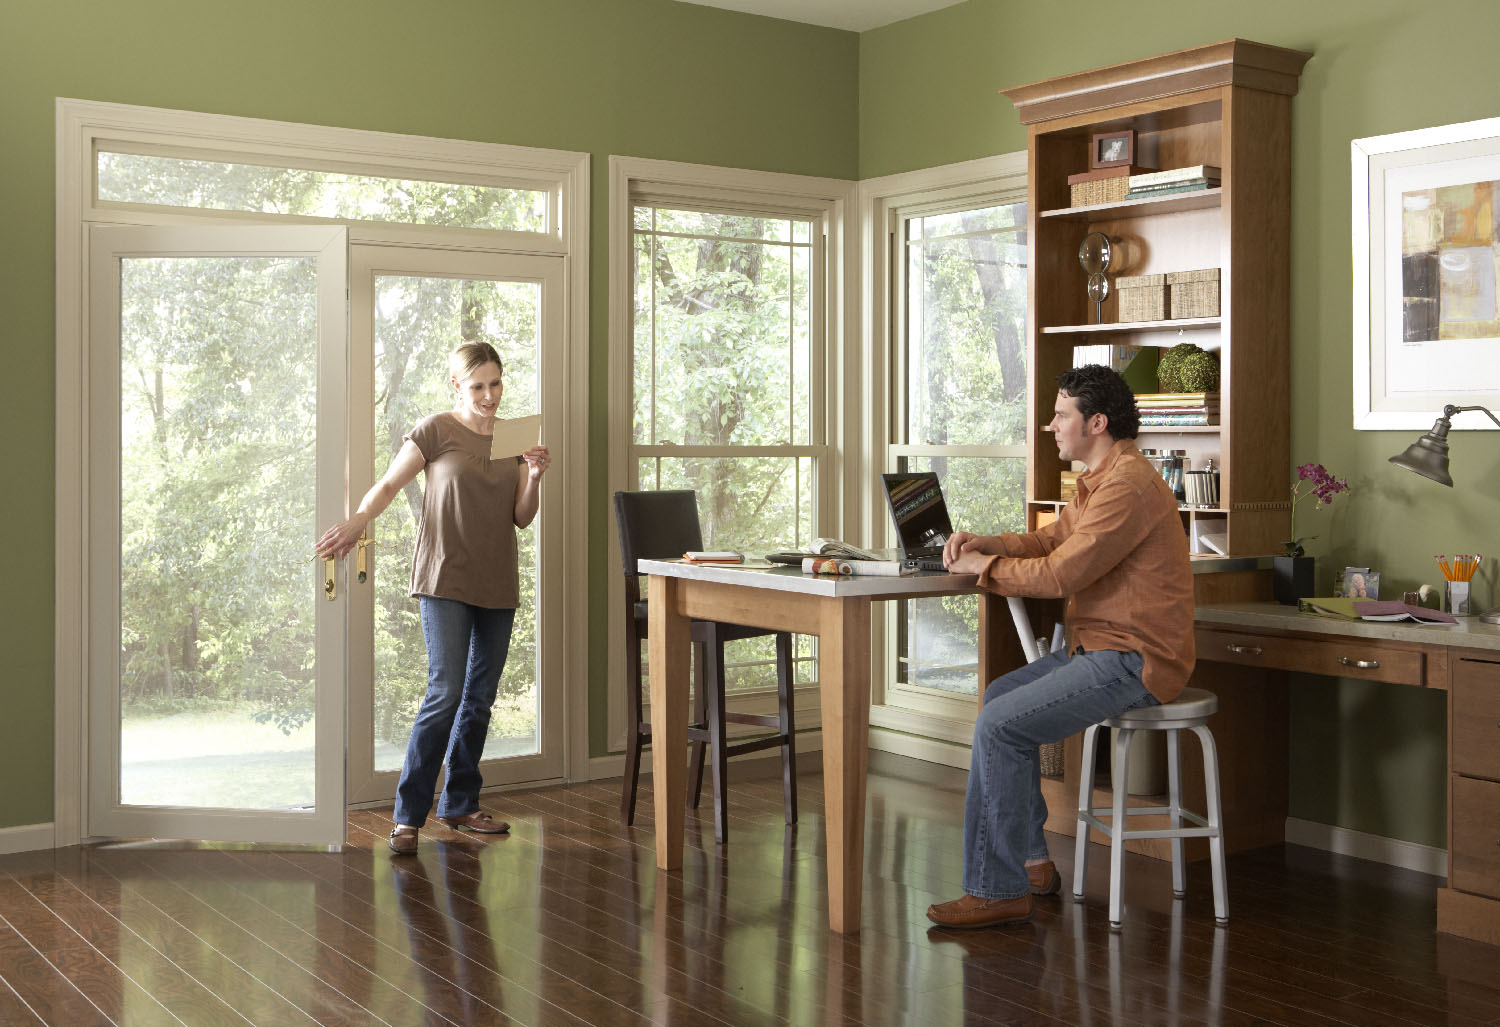 Swinging Patio Door In Home Office Leading To Backyard